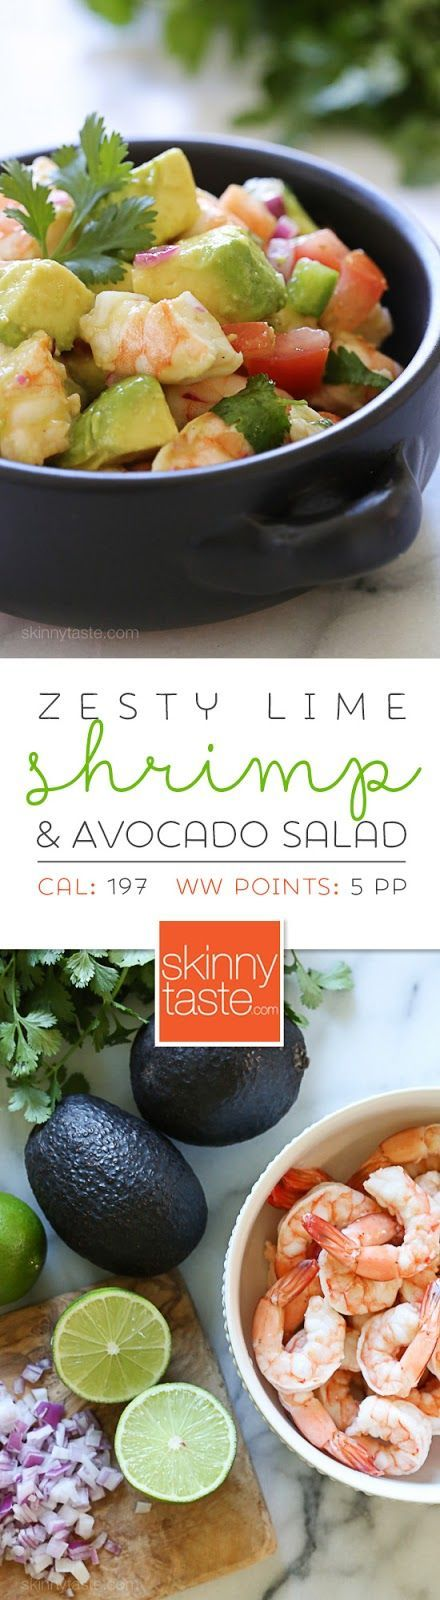 Zesty Lime Shrimp and Avocado Salad – Gluten-free, low-carb, whole30, clean eating, paleo and low calories.